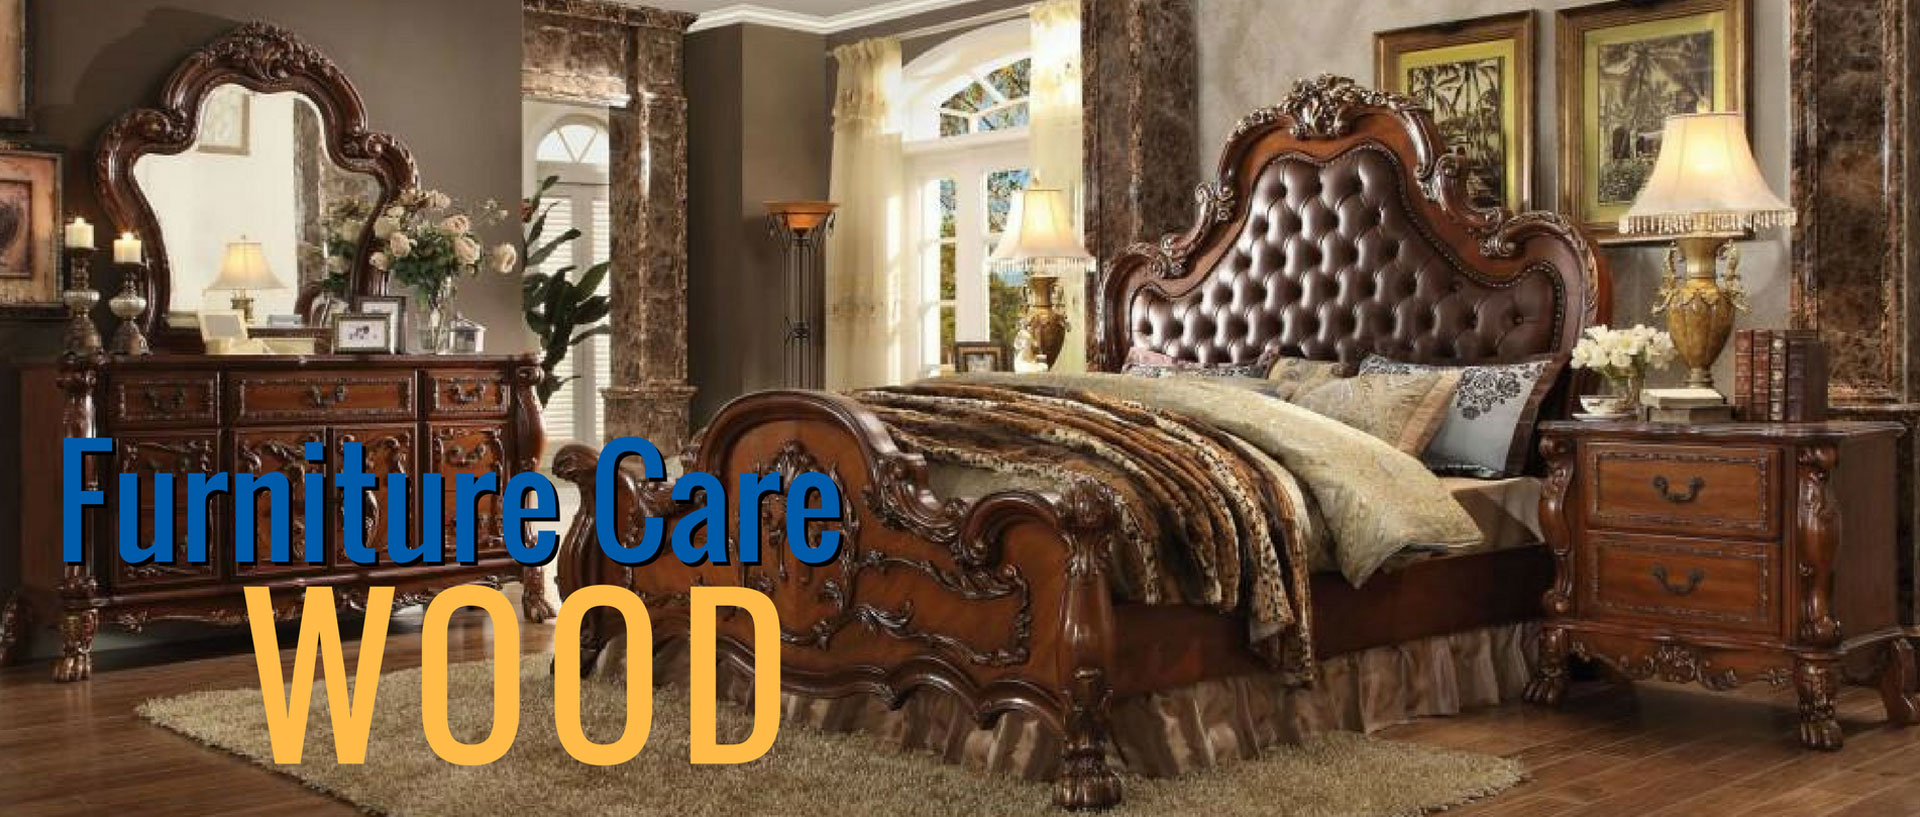 Furniture Care - Wood